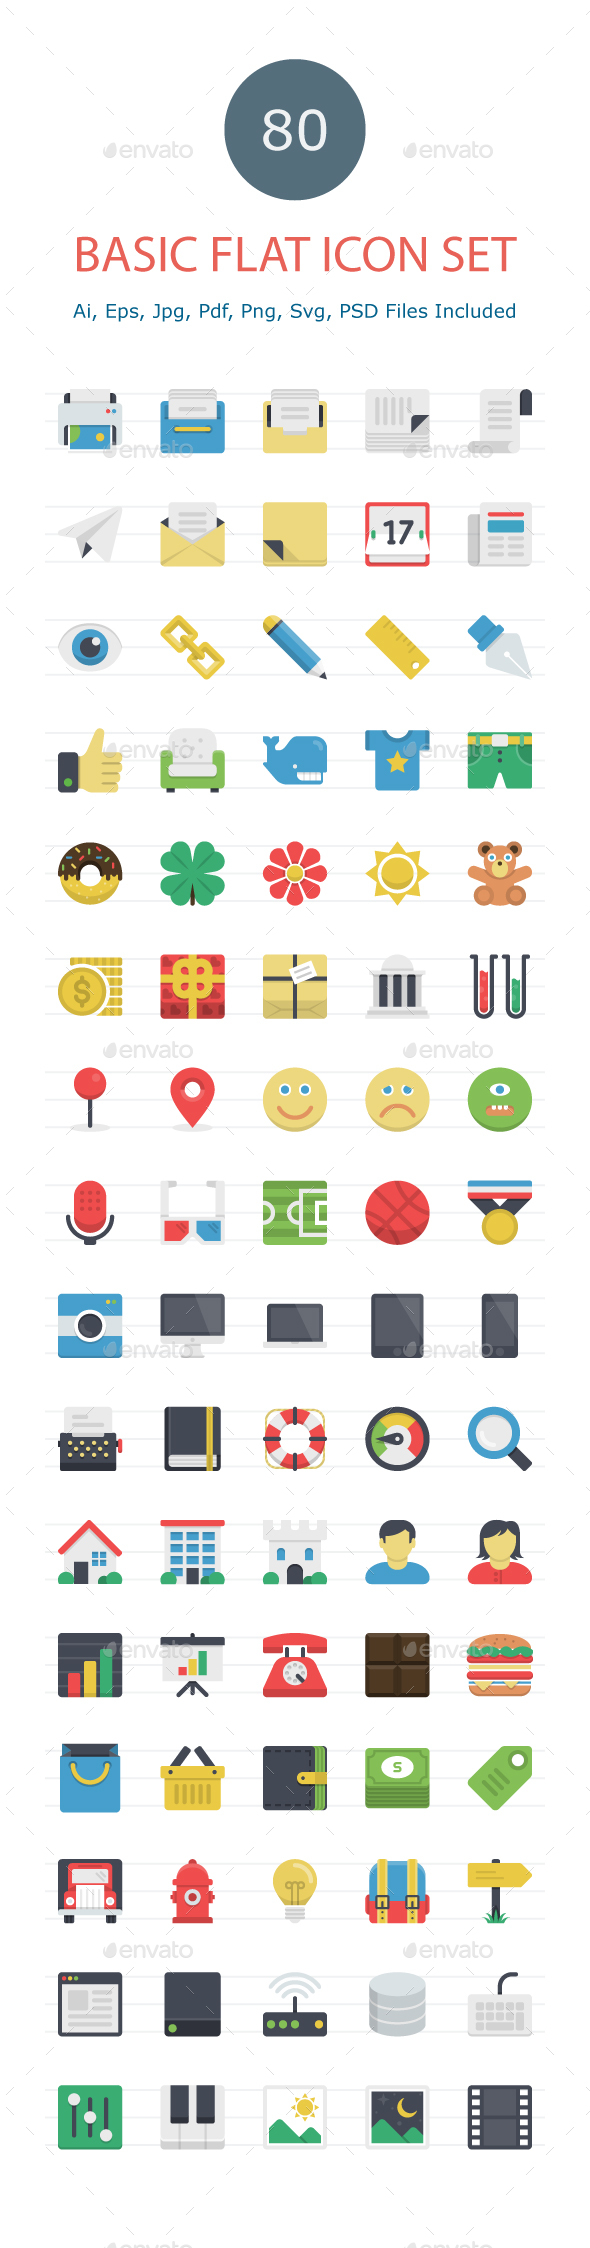 GraphicRiver Basic Flat Icons 20561173